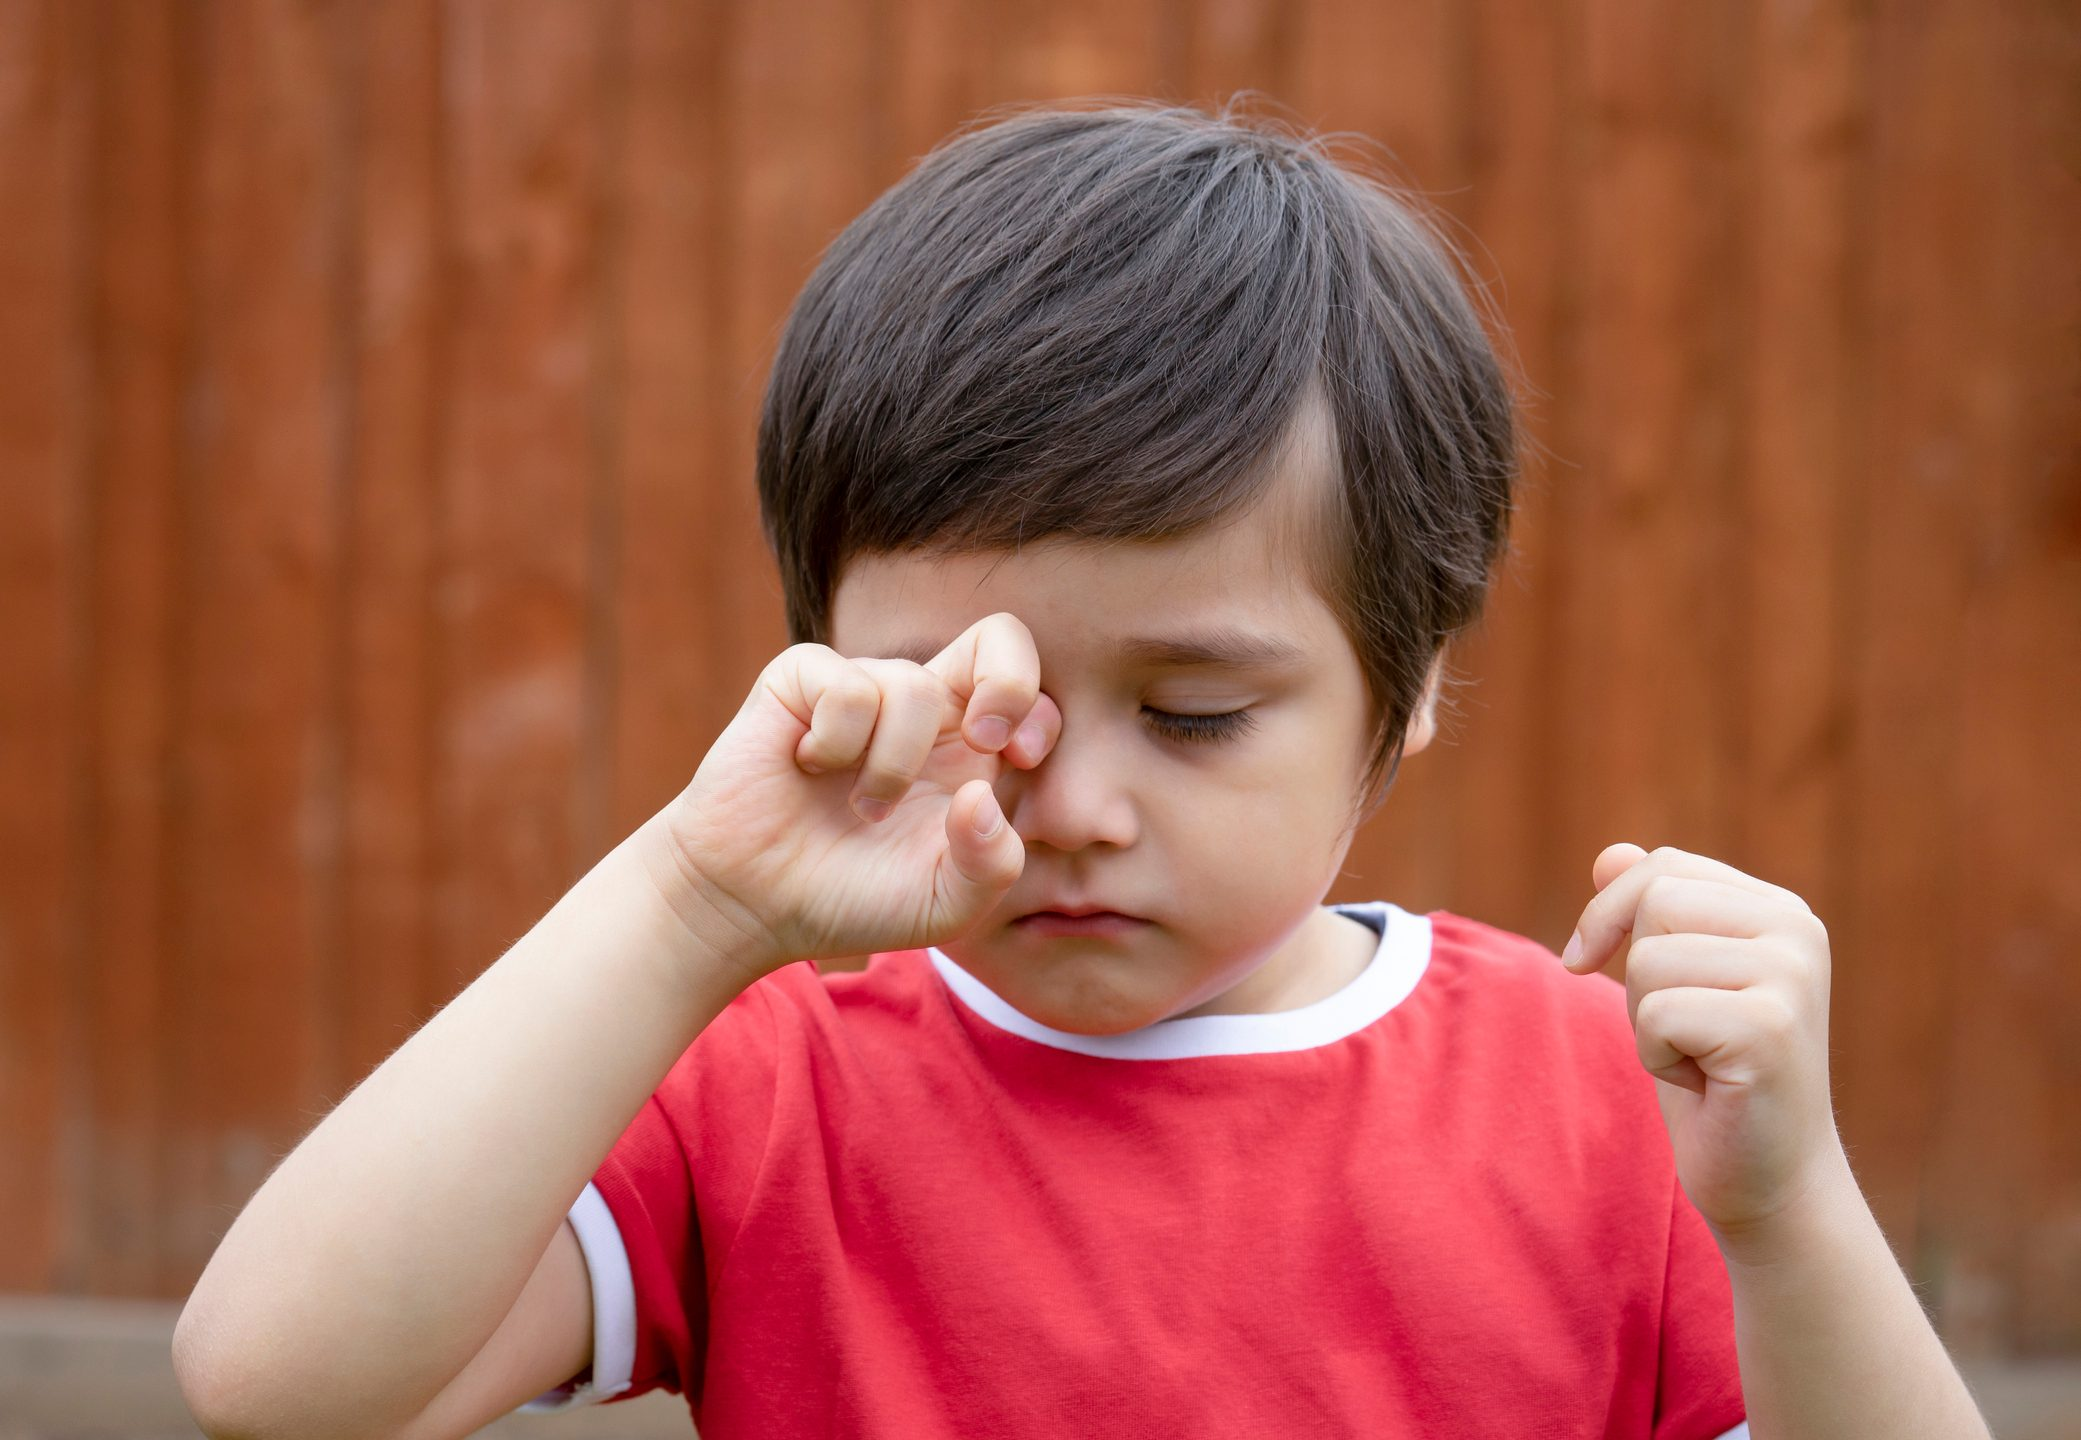 young boy rubbing his eye